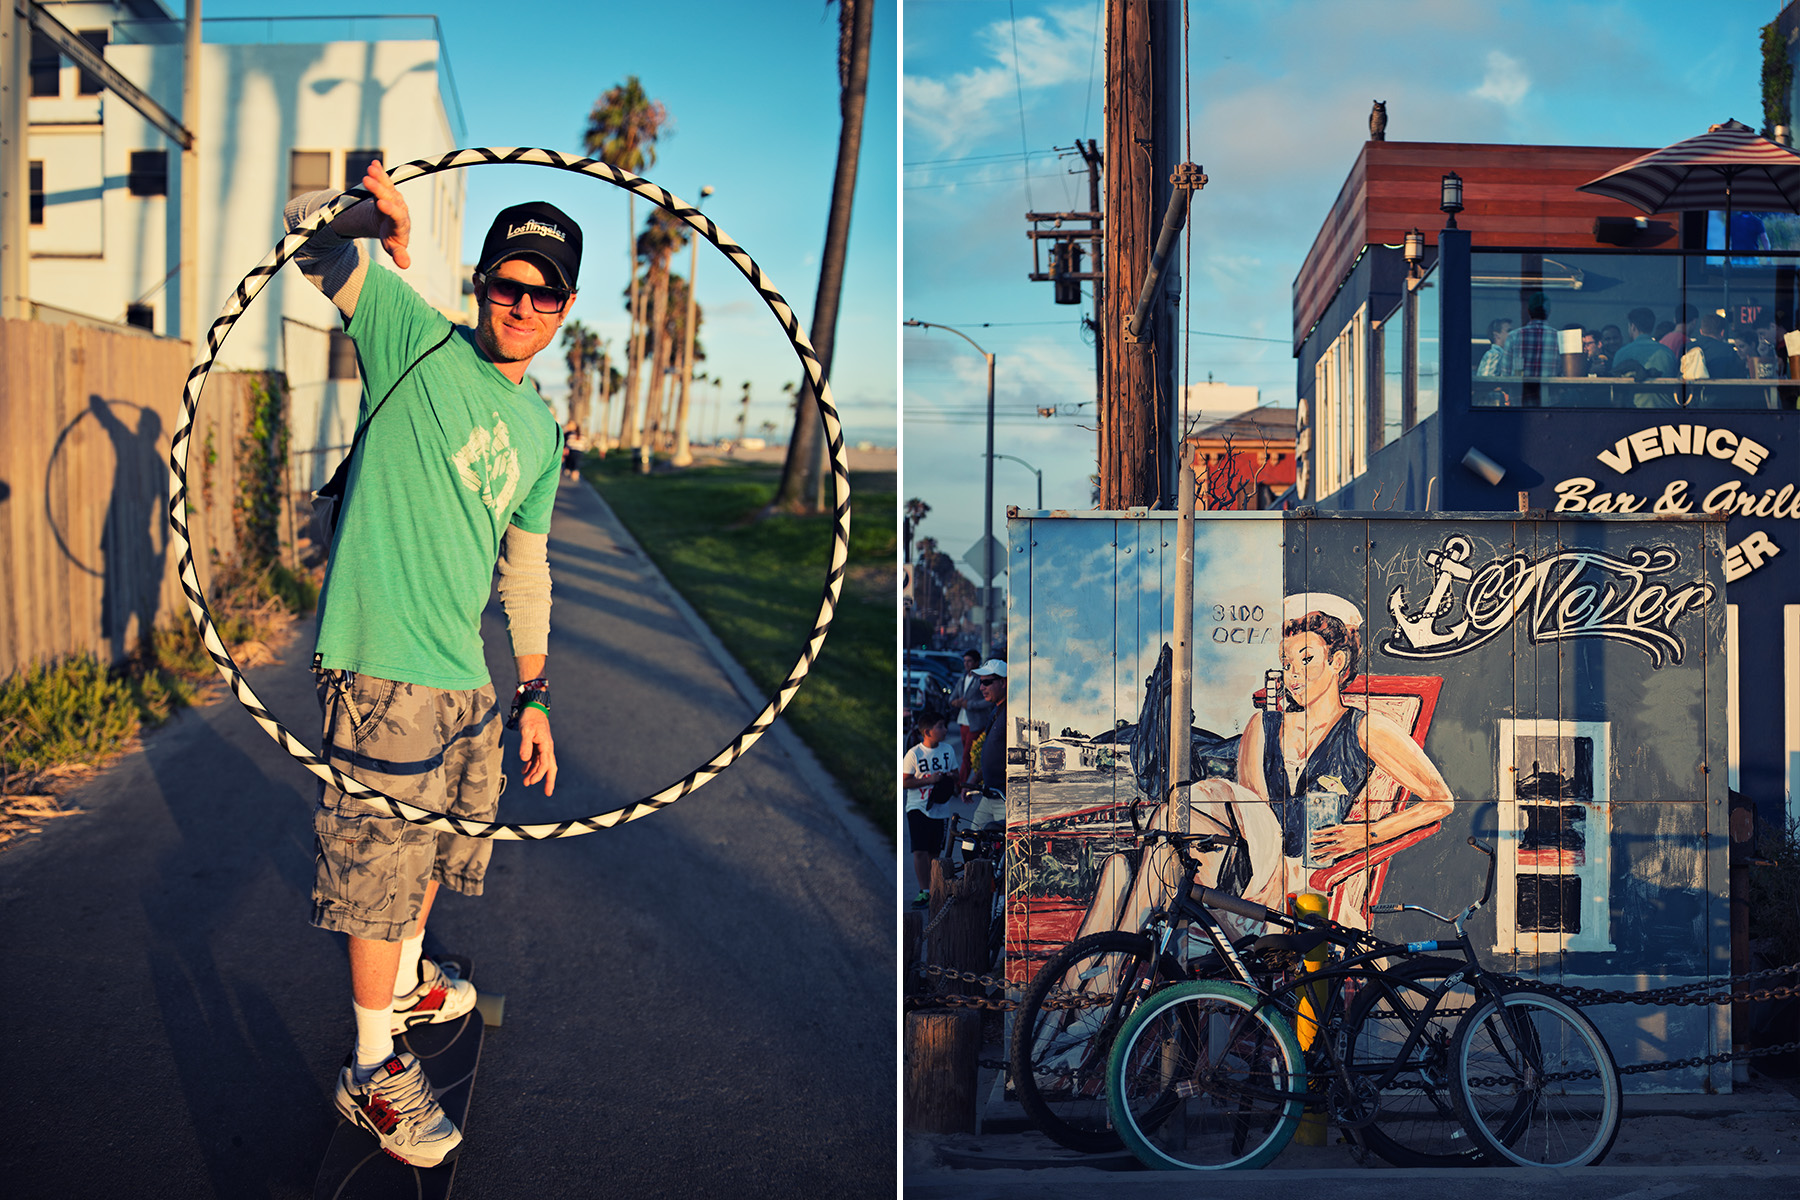 left: man playing with a hulla hoop while skateboarding | Right: Mural near Venice Fishing Pier